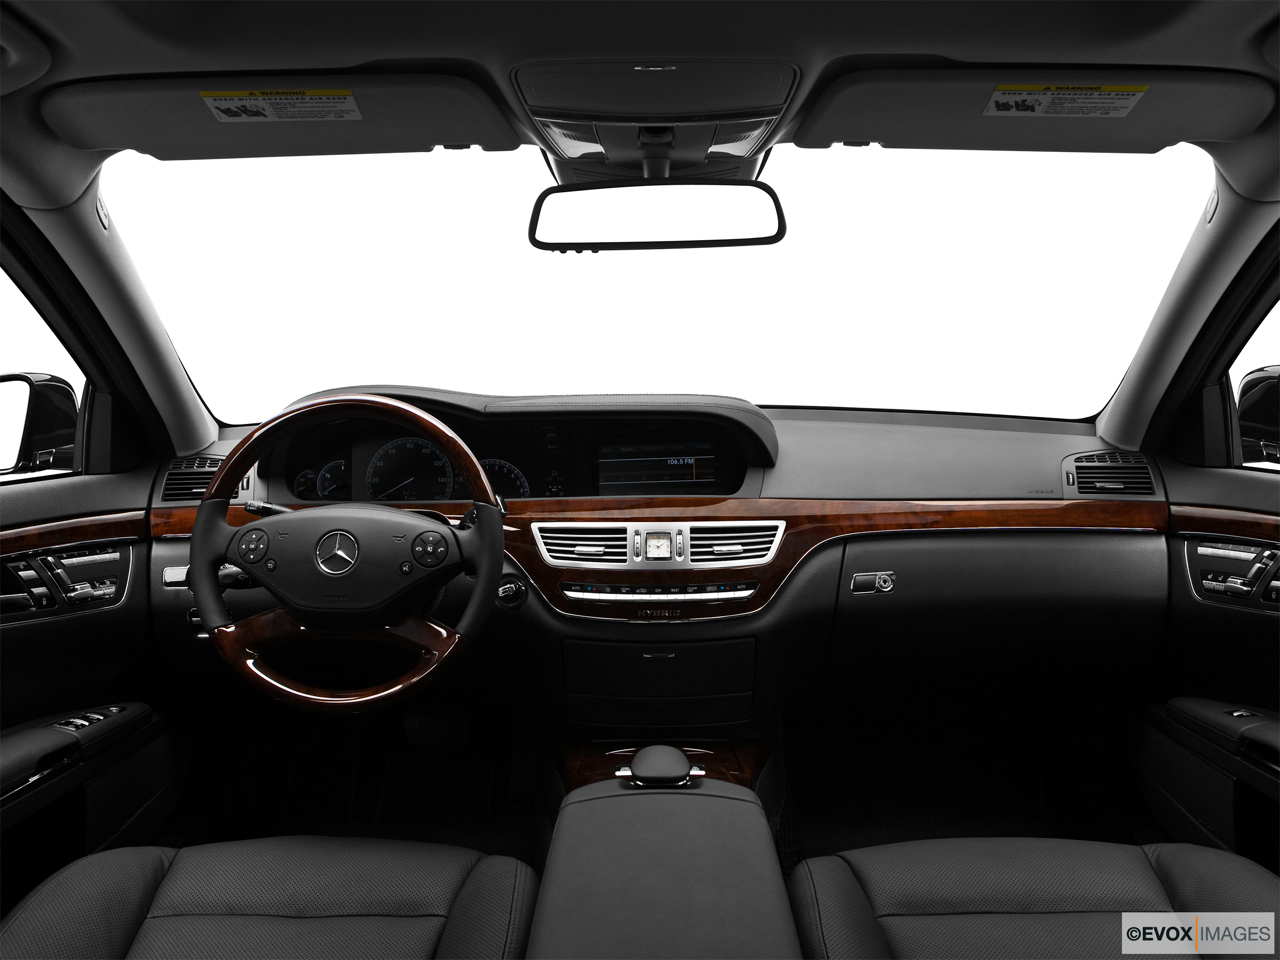 2010 Mercedes-Benz S-Class Hybrid S400 Centered wide dash shot